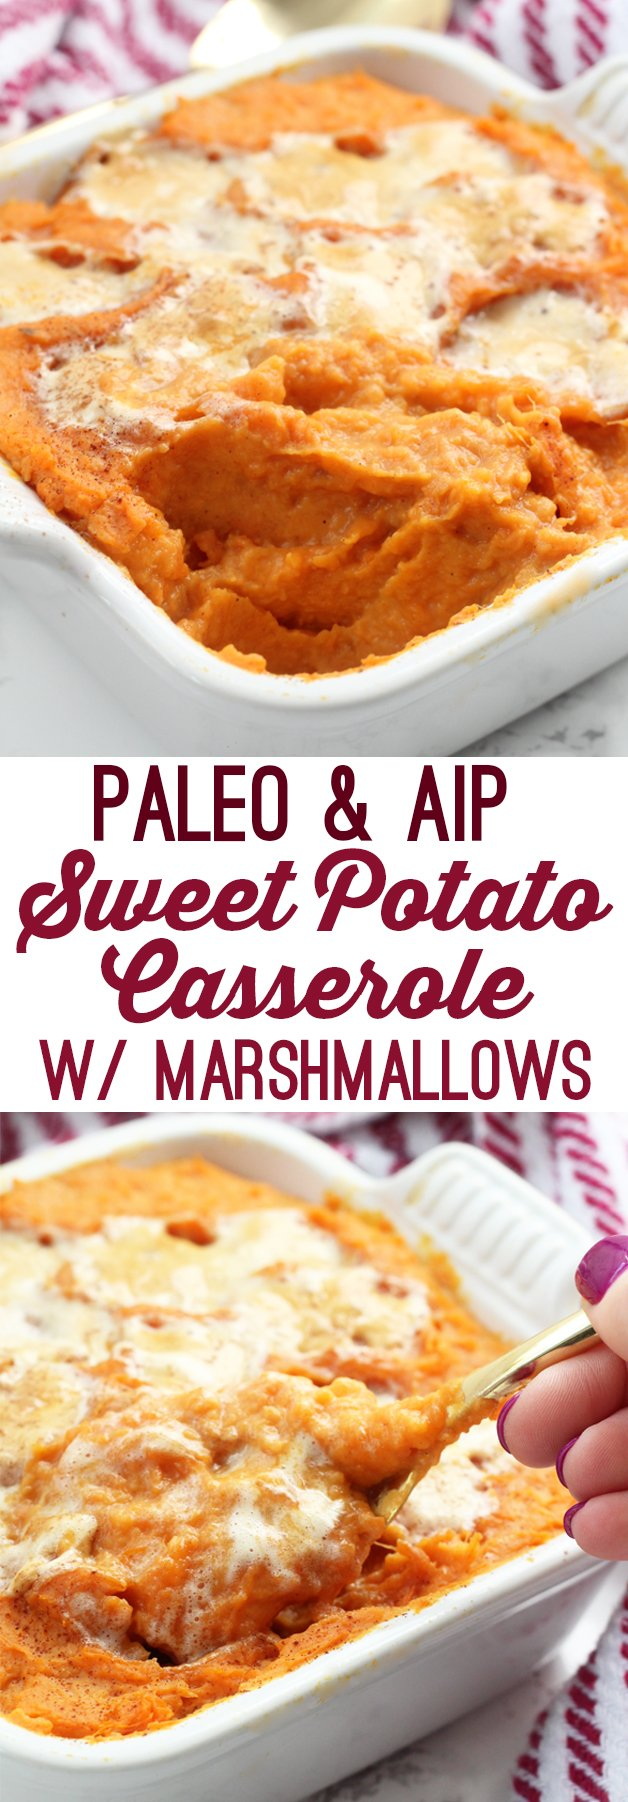 Sweet Potato Casserole with Marshmallows (Paleo & AIP)